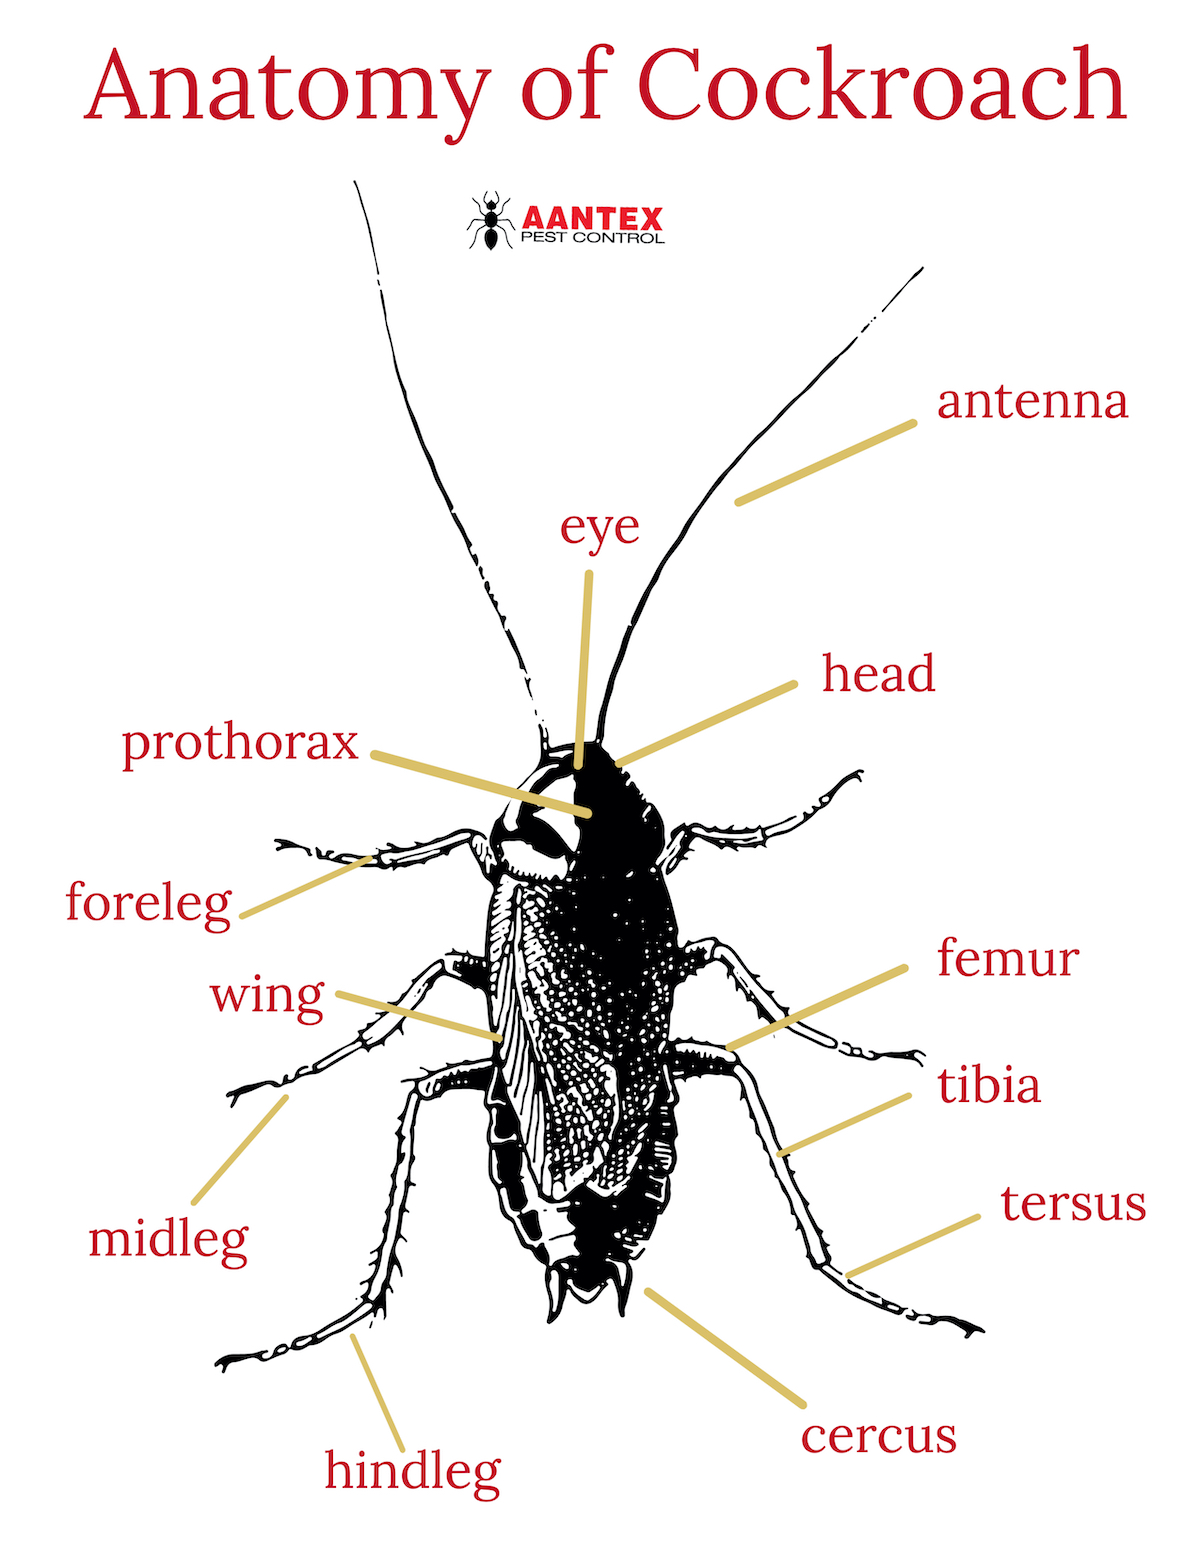 Anatomy of Cockroach